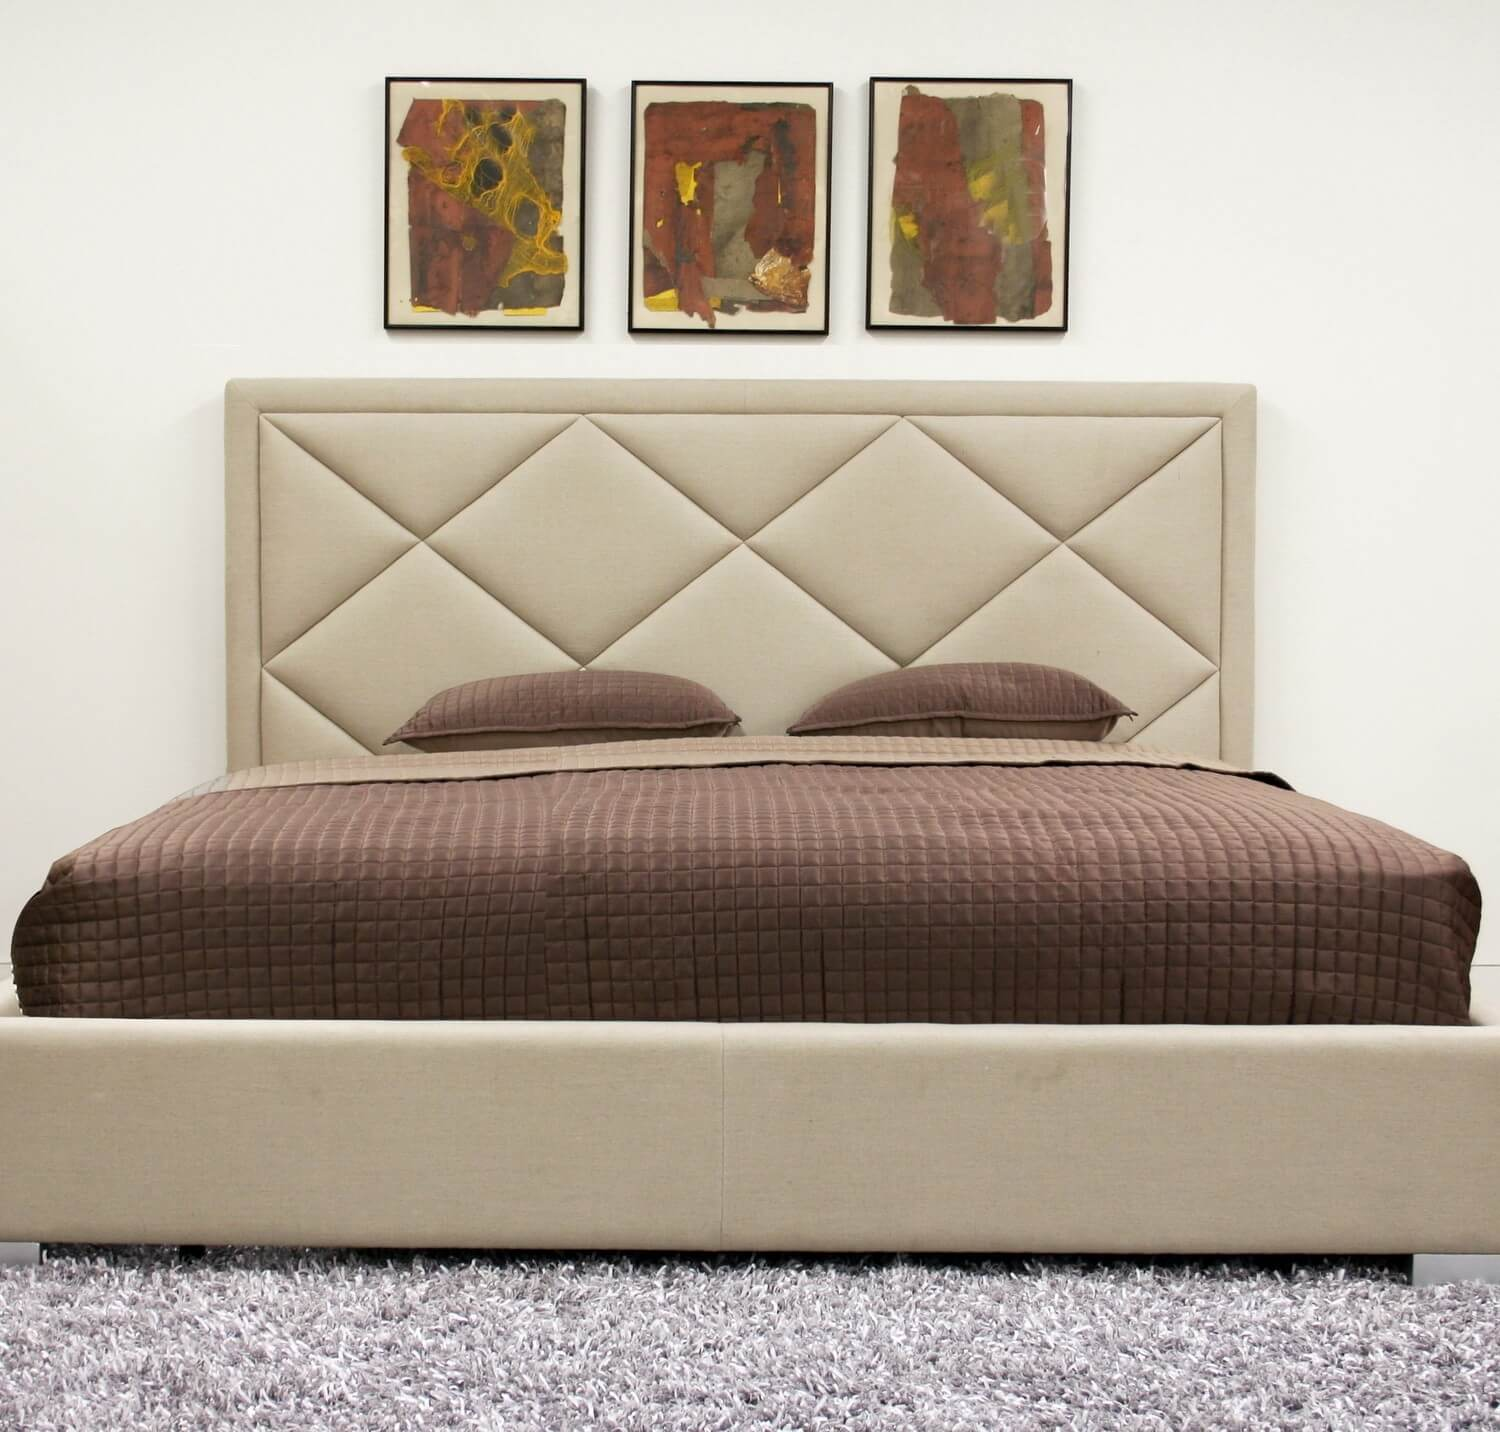 Tufted Headboard Image Design